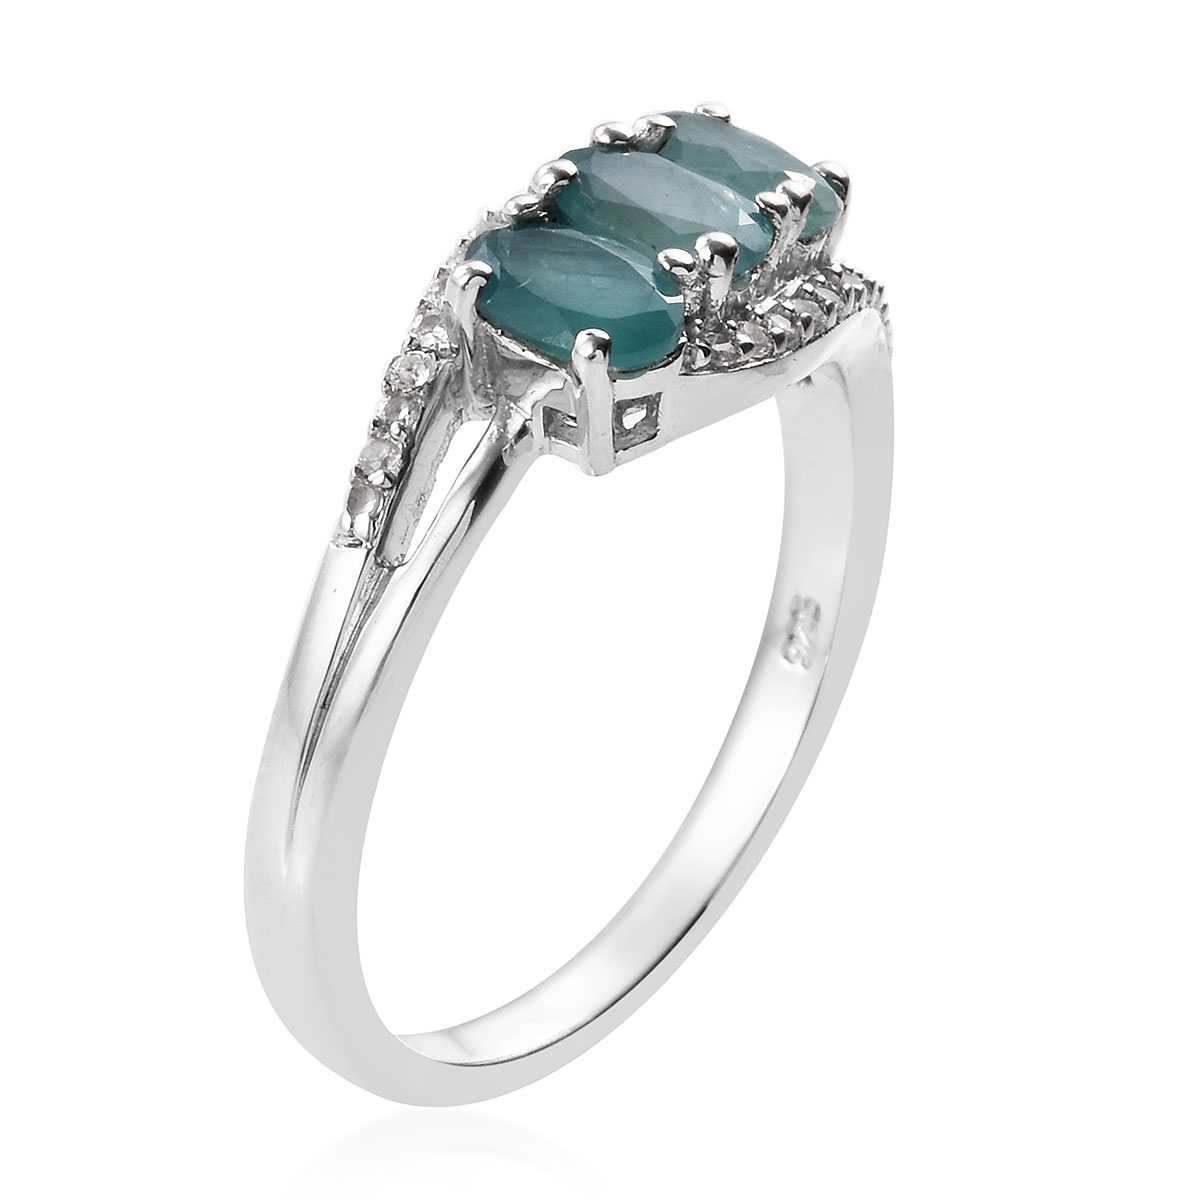 Grandidierite, Zircon Bypass Ring in Platinum Over Sterling Silver (Size 5.0) 1.50 ctw